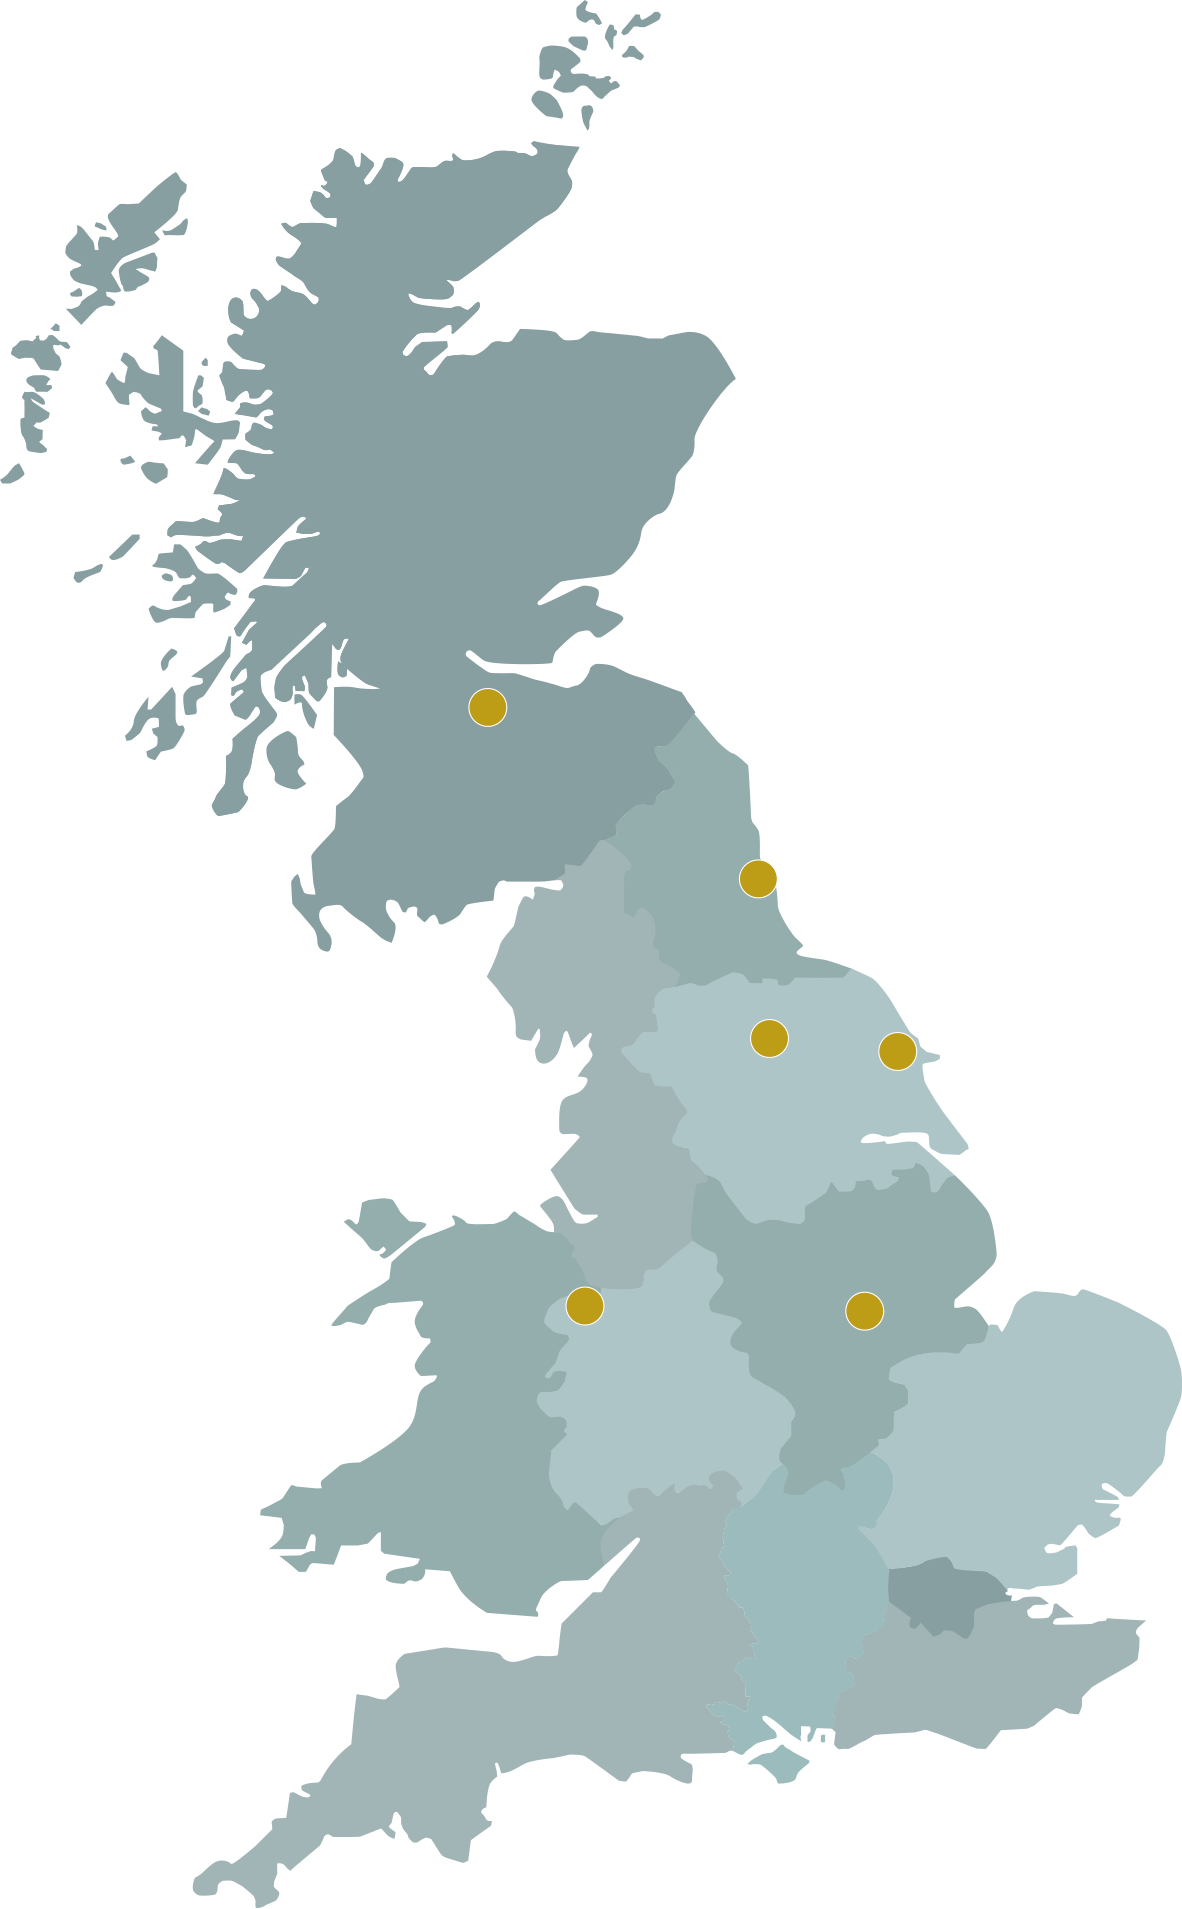 offices locations